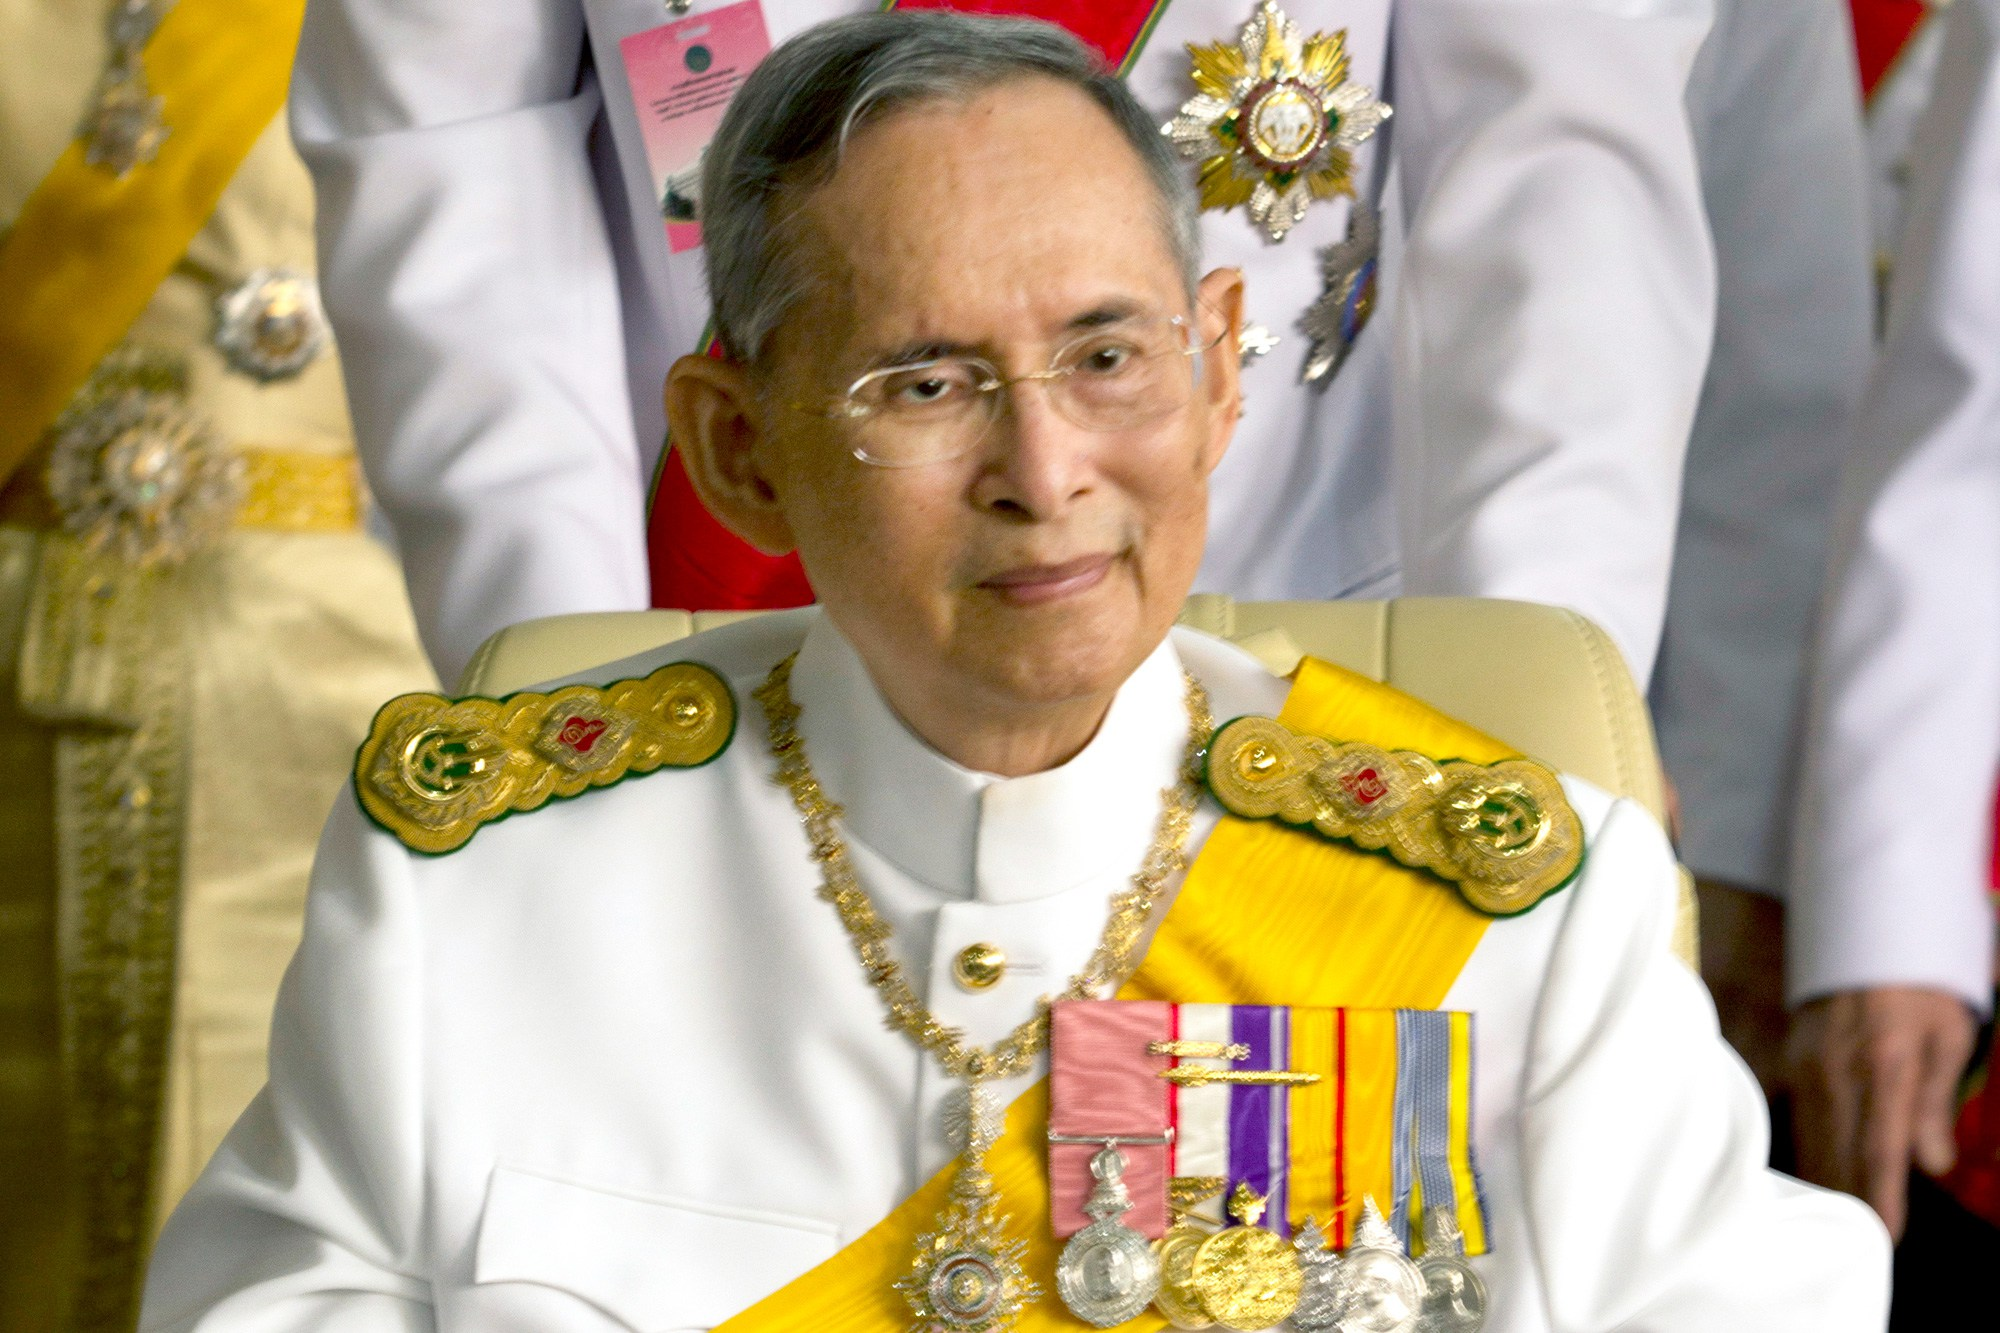 Thailand's king Bhumibol Adulyadej smiles on his birthday